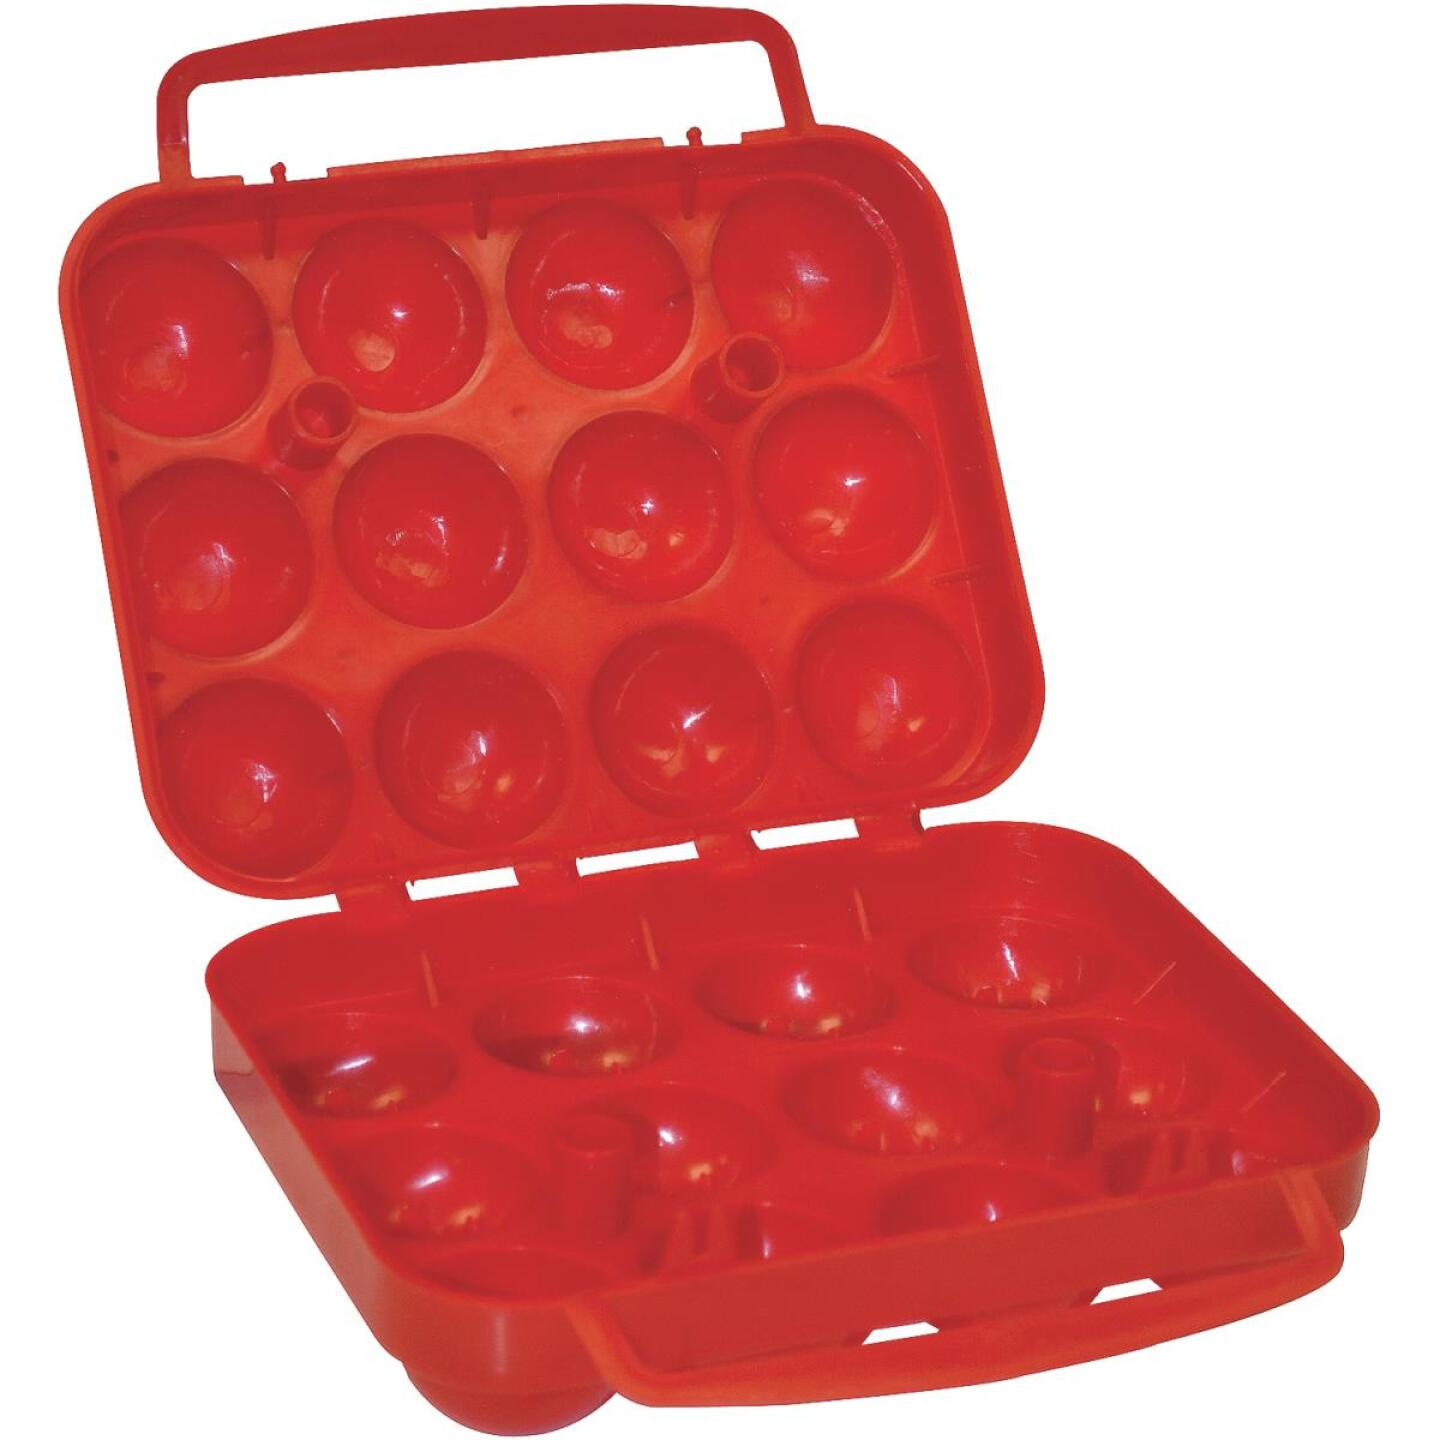 Coleman 12-Count Red Egg Container Image 1